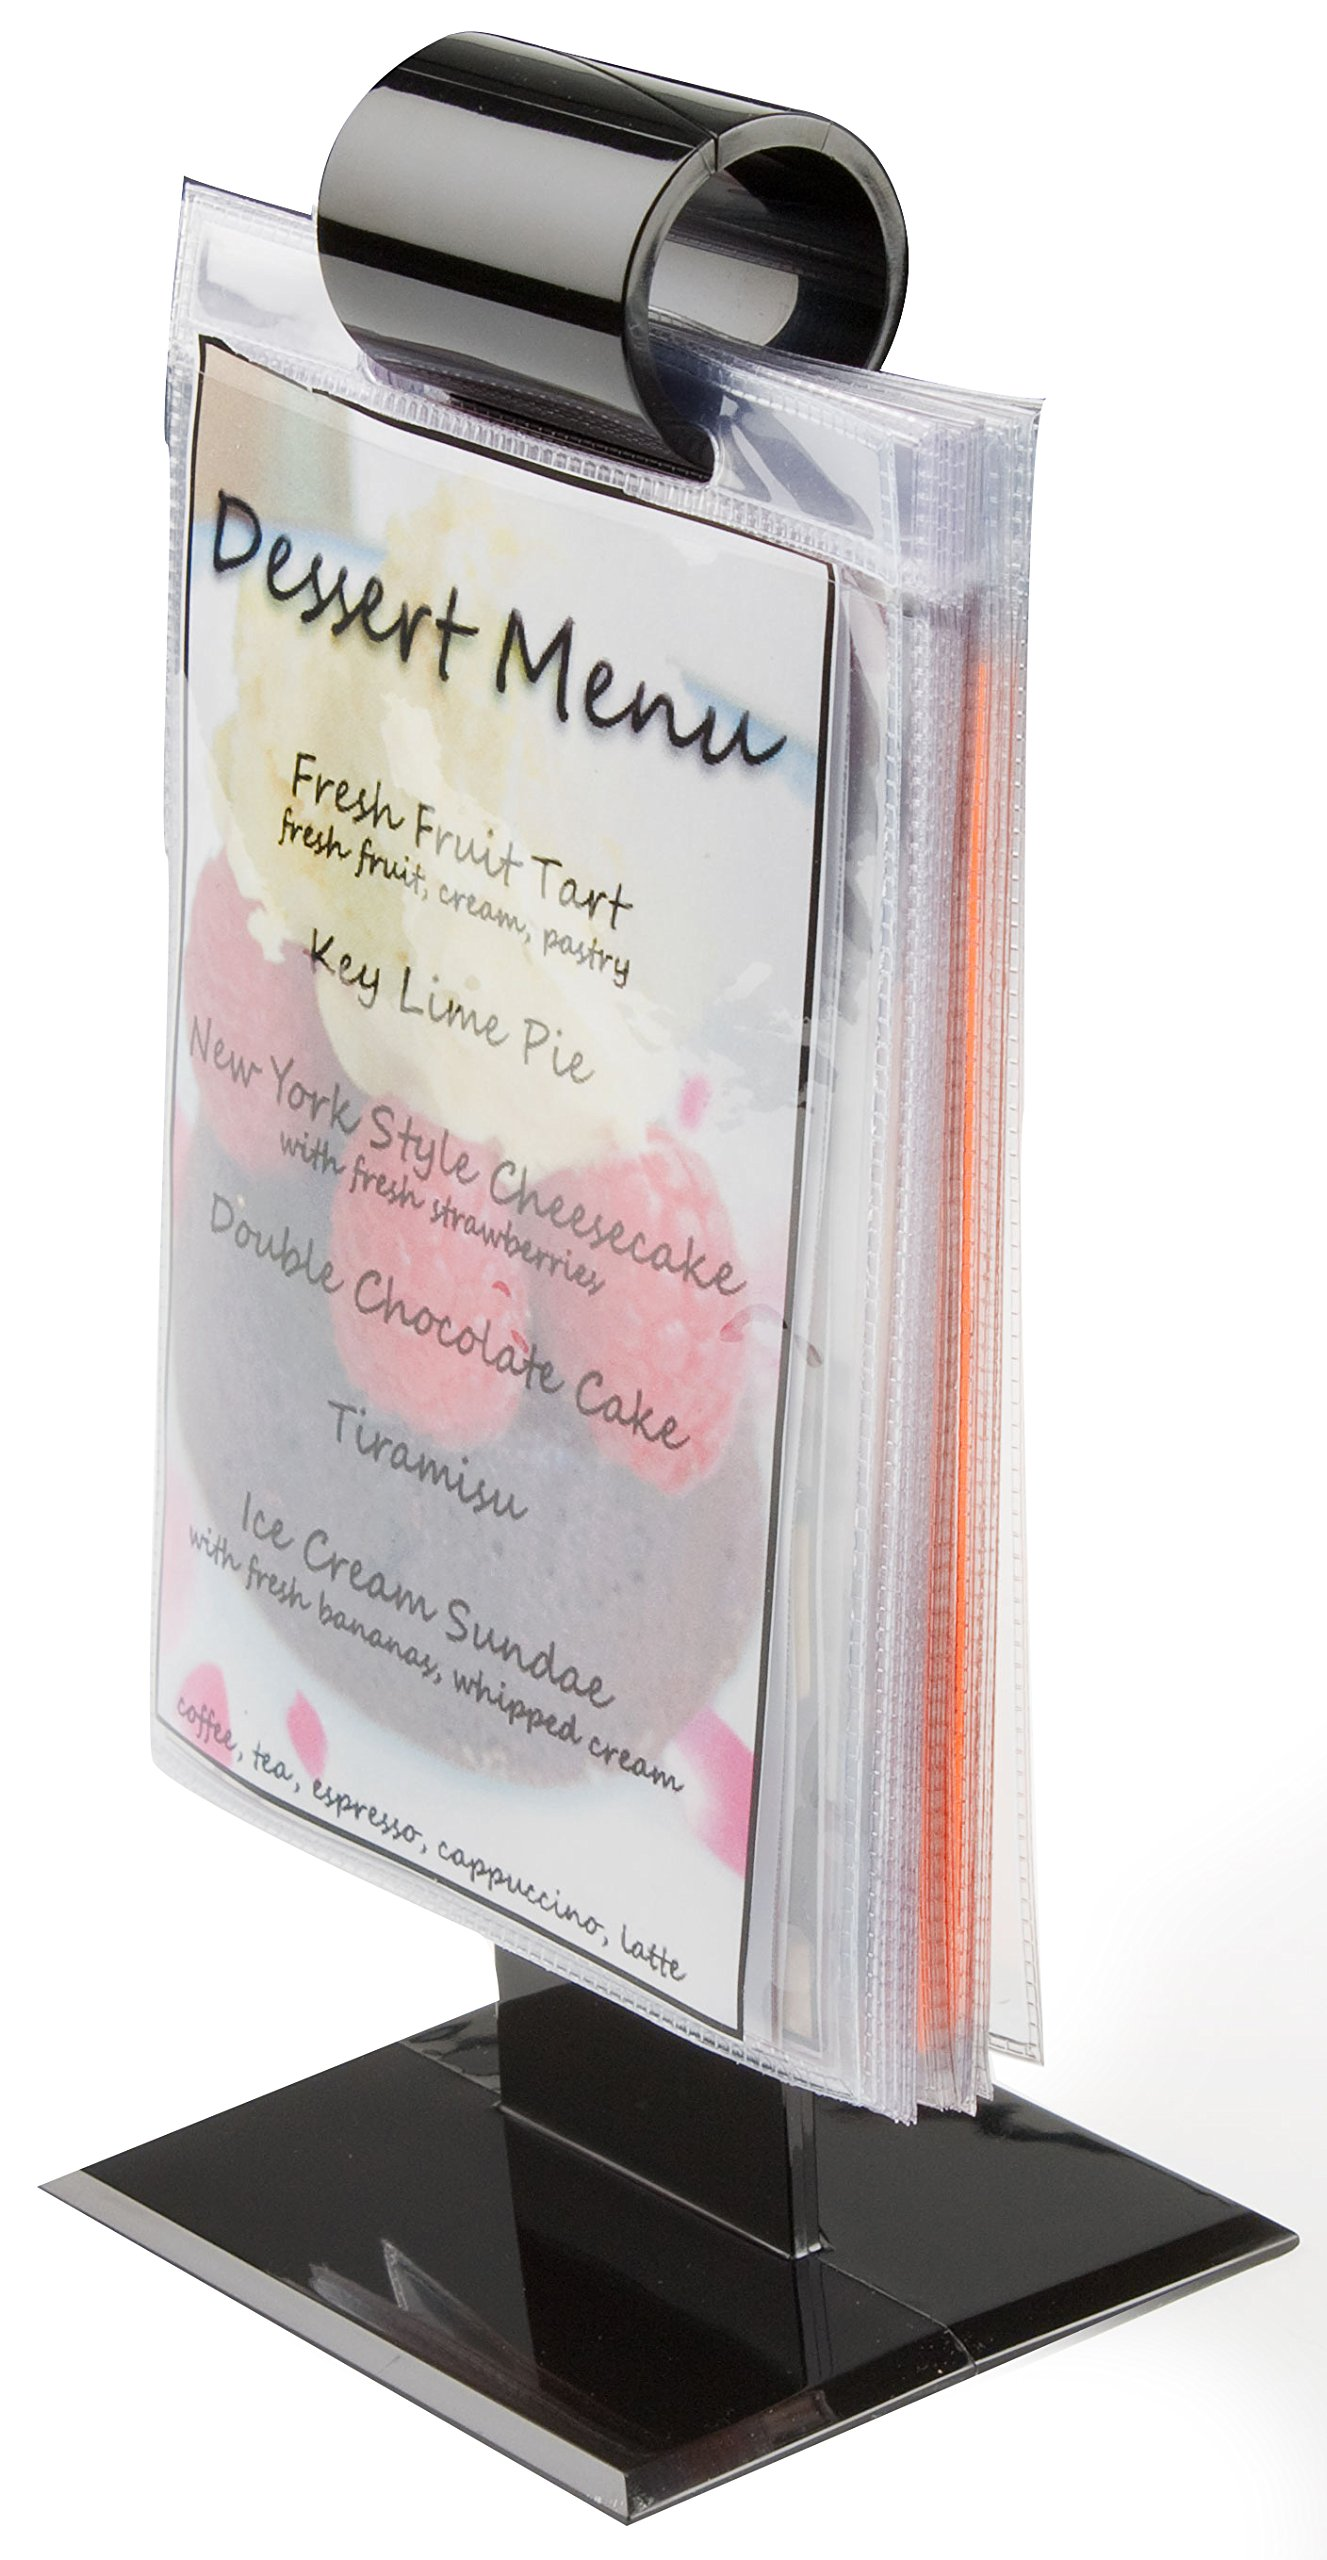 Set of 50 Restaurant Menu Holders, with 500 4x6 Sleeves, Black Plastic Table Tents by Displays2go (Image #1)